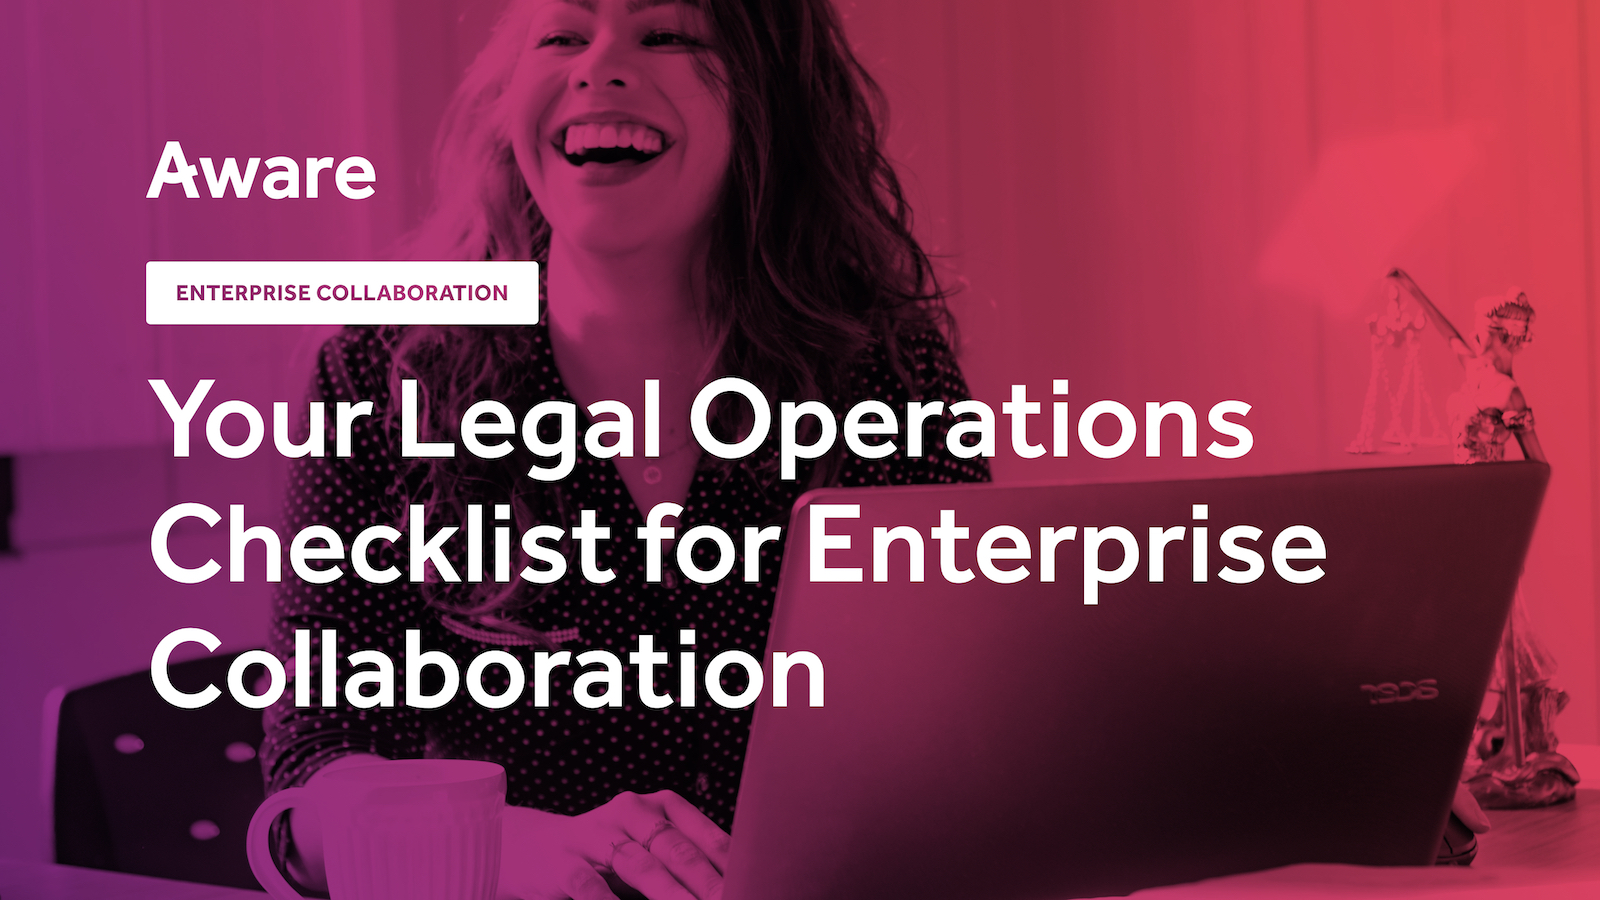 Your Legal Operations Checklist for Enterprise Collaboration